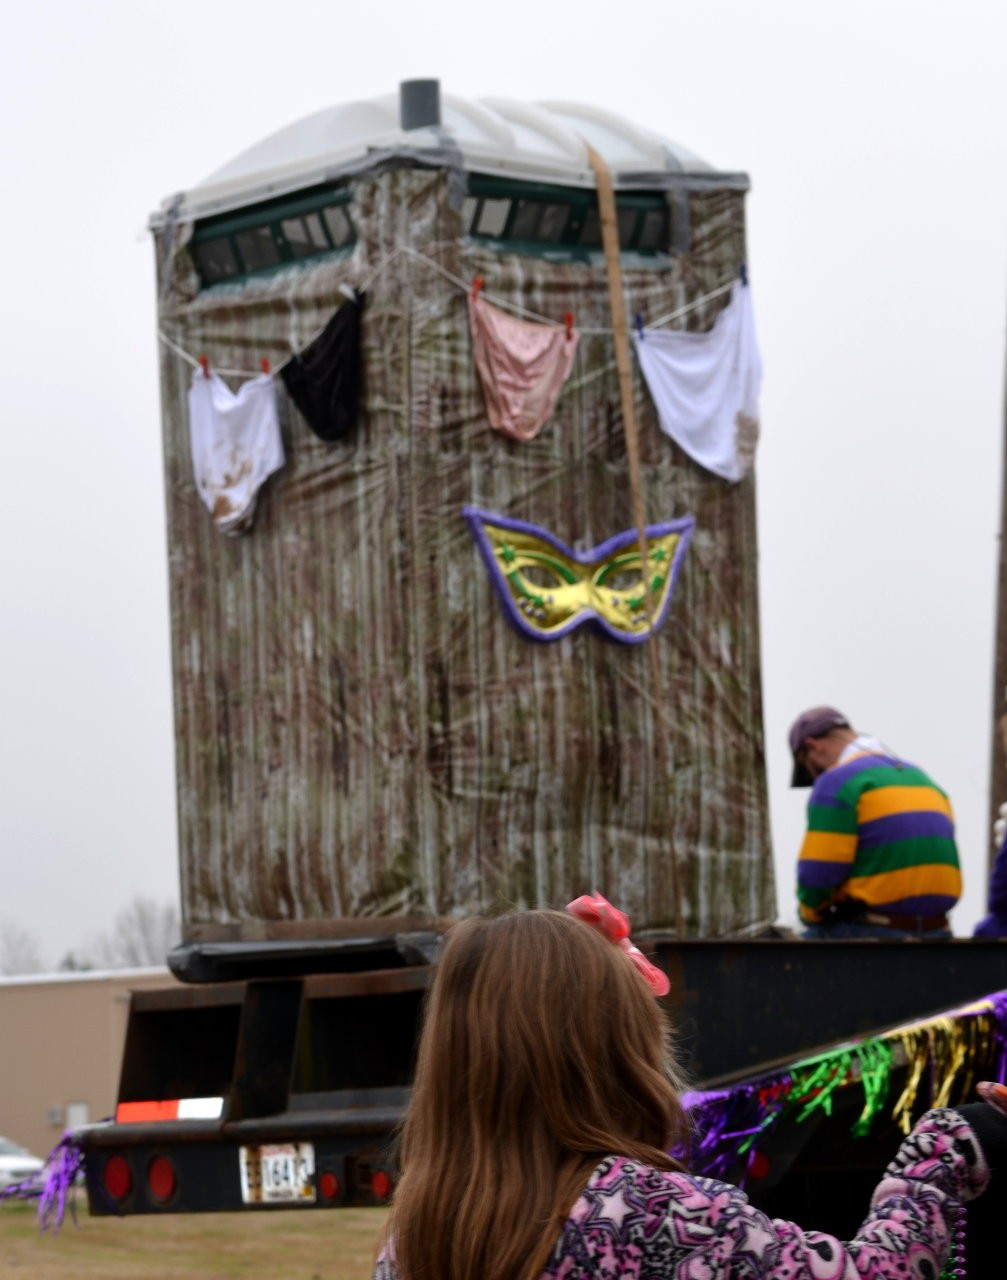 Every wagon and float was equipped with a porta-potty.  The decor on this one made me laugh!